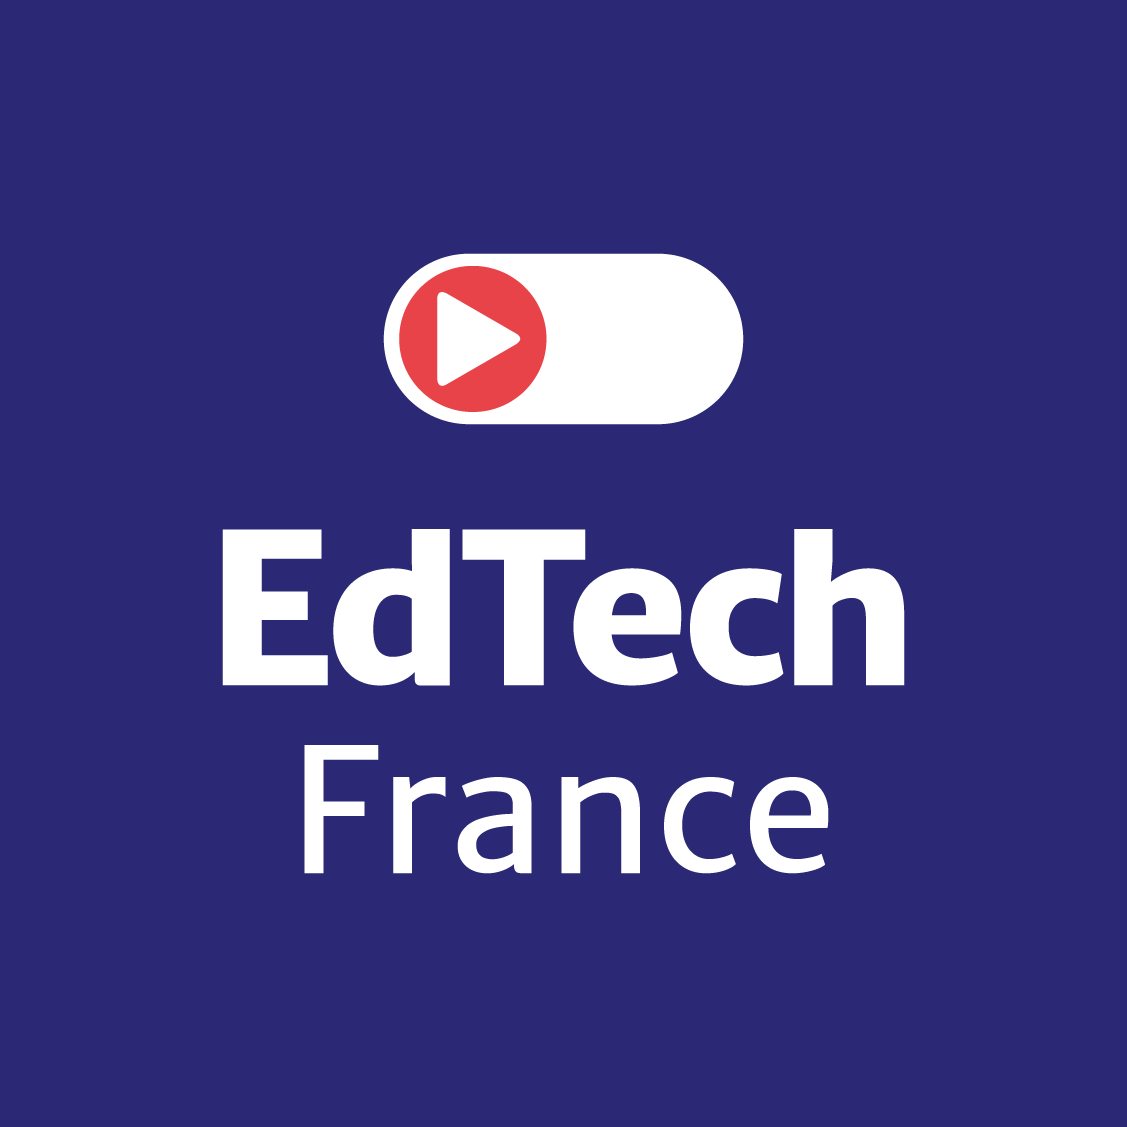 EdTech France